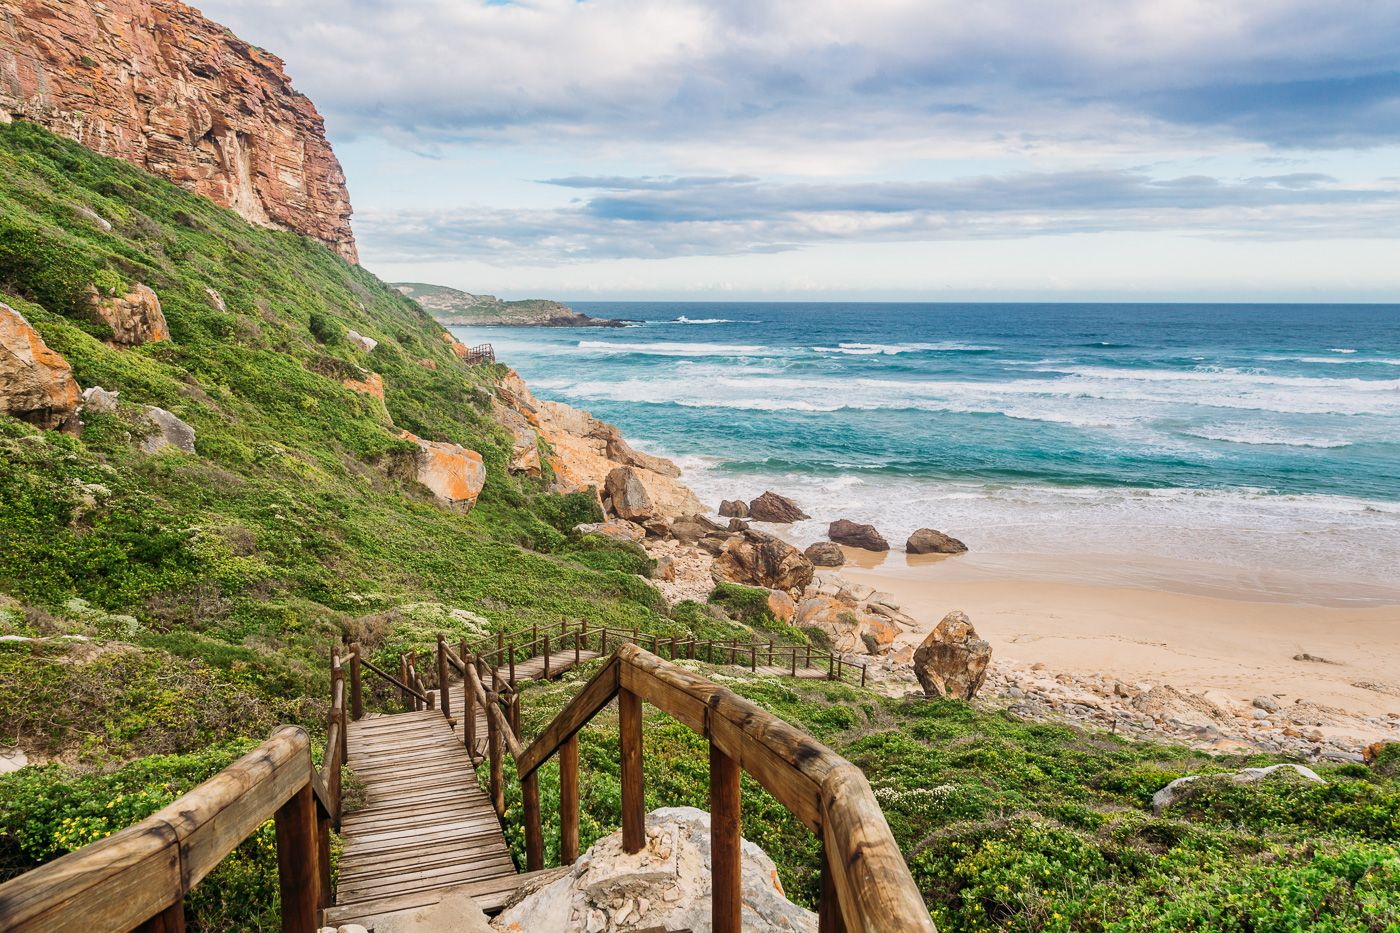 Robberg Nature Reserve is a peninsula of paradise on South